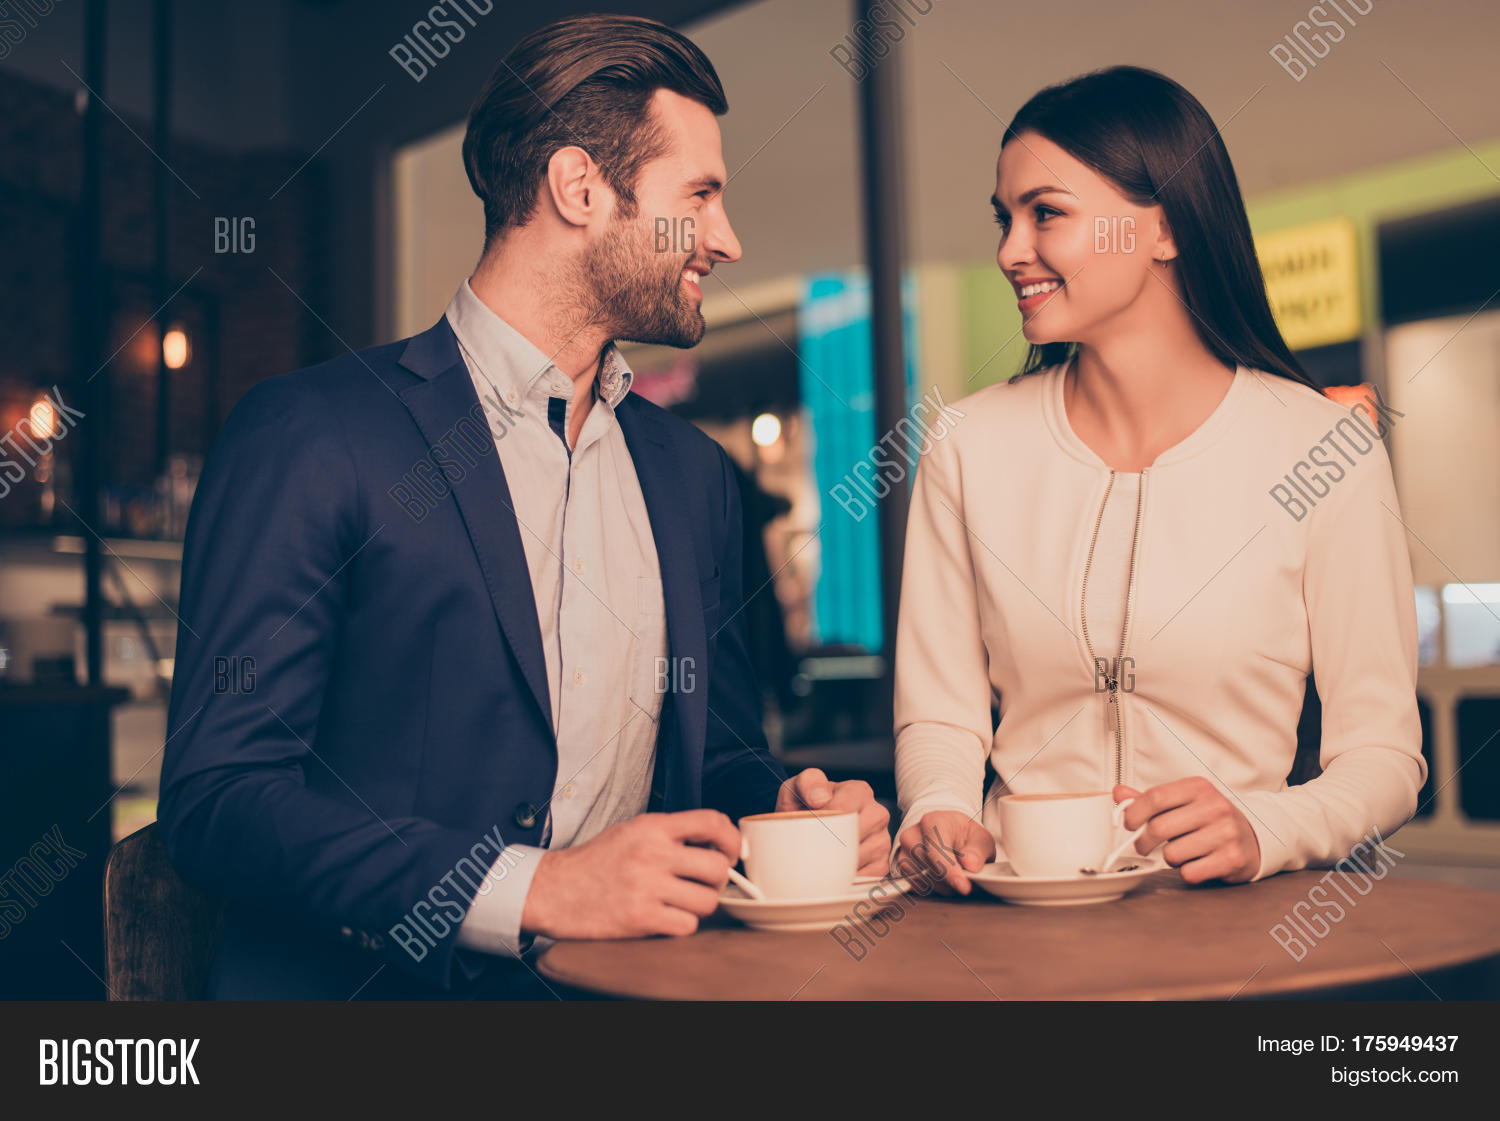 Ronquist total evidence dating services